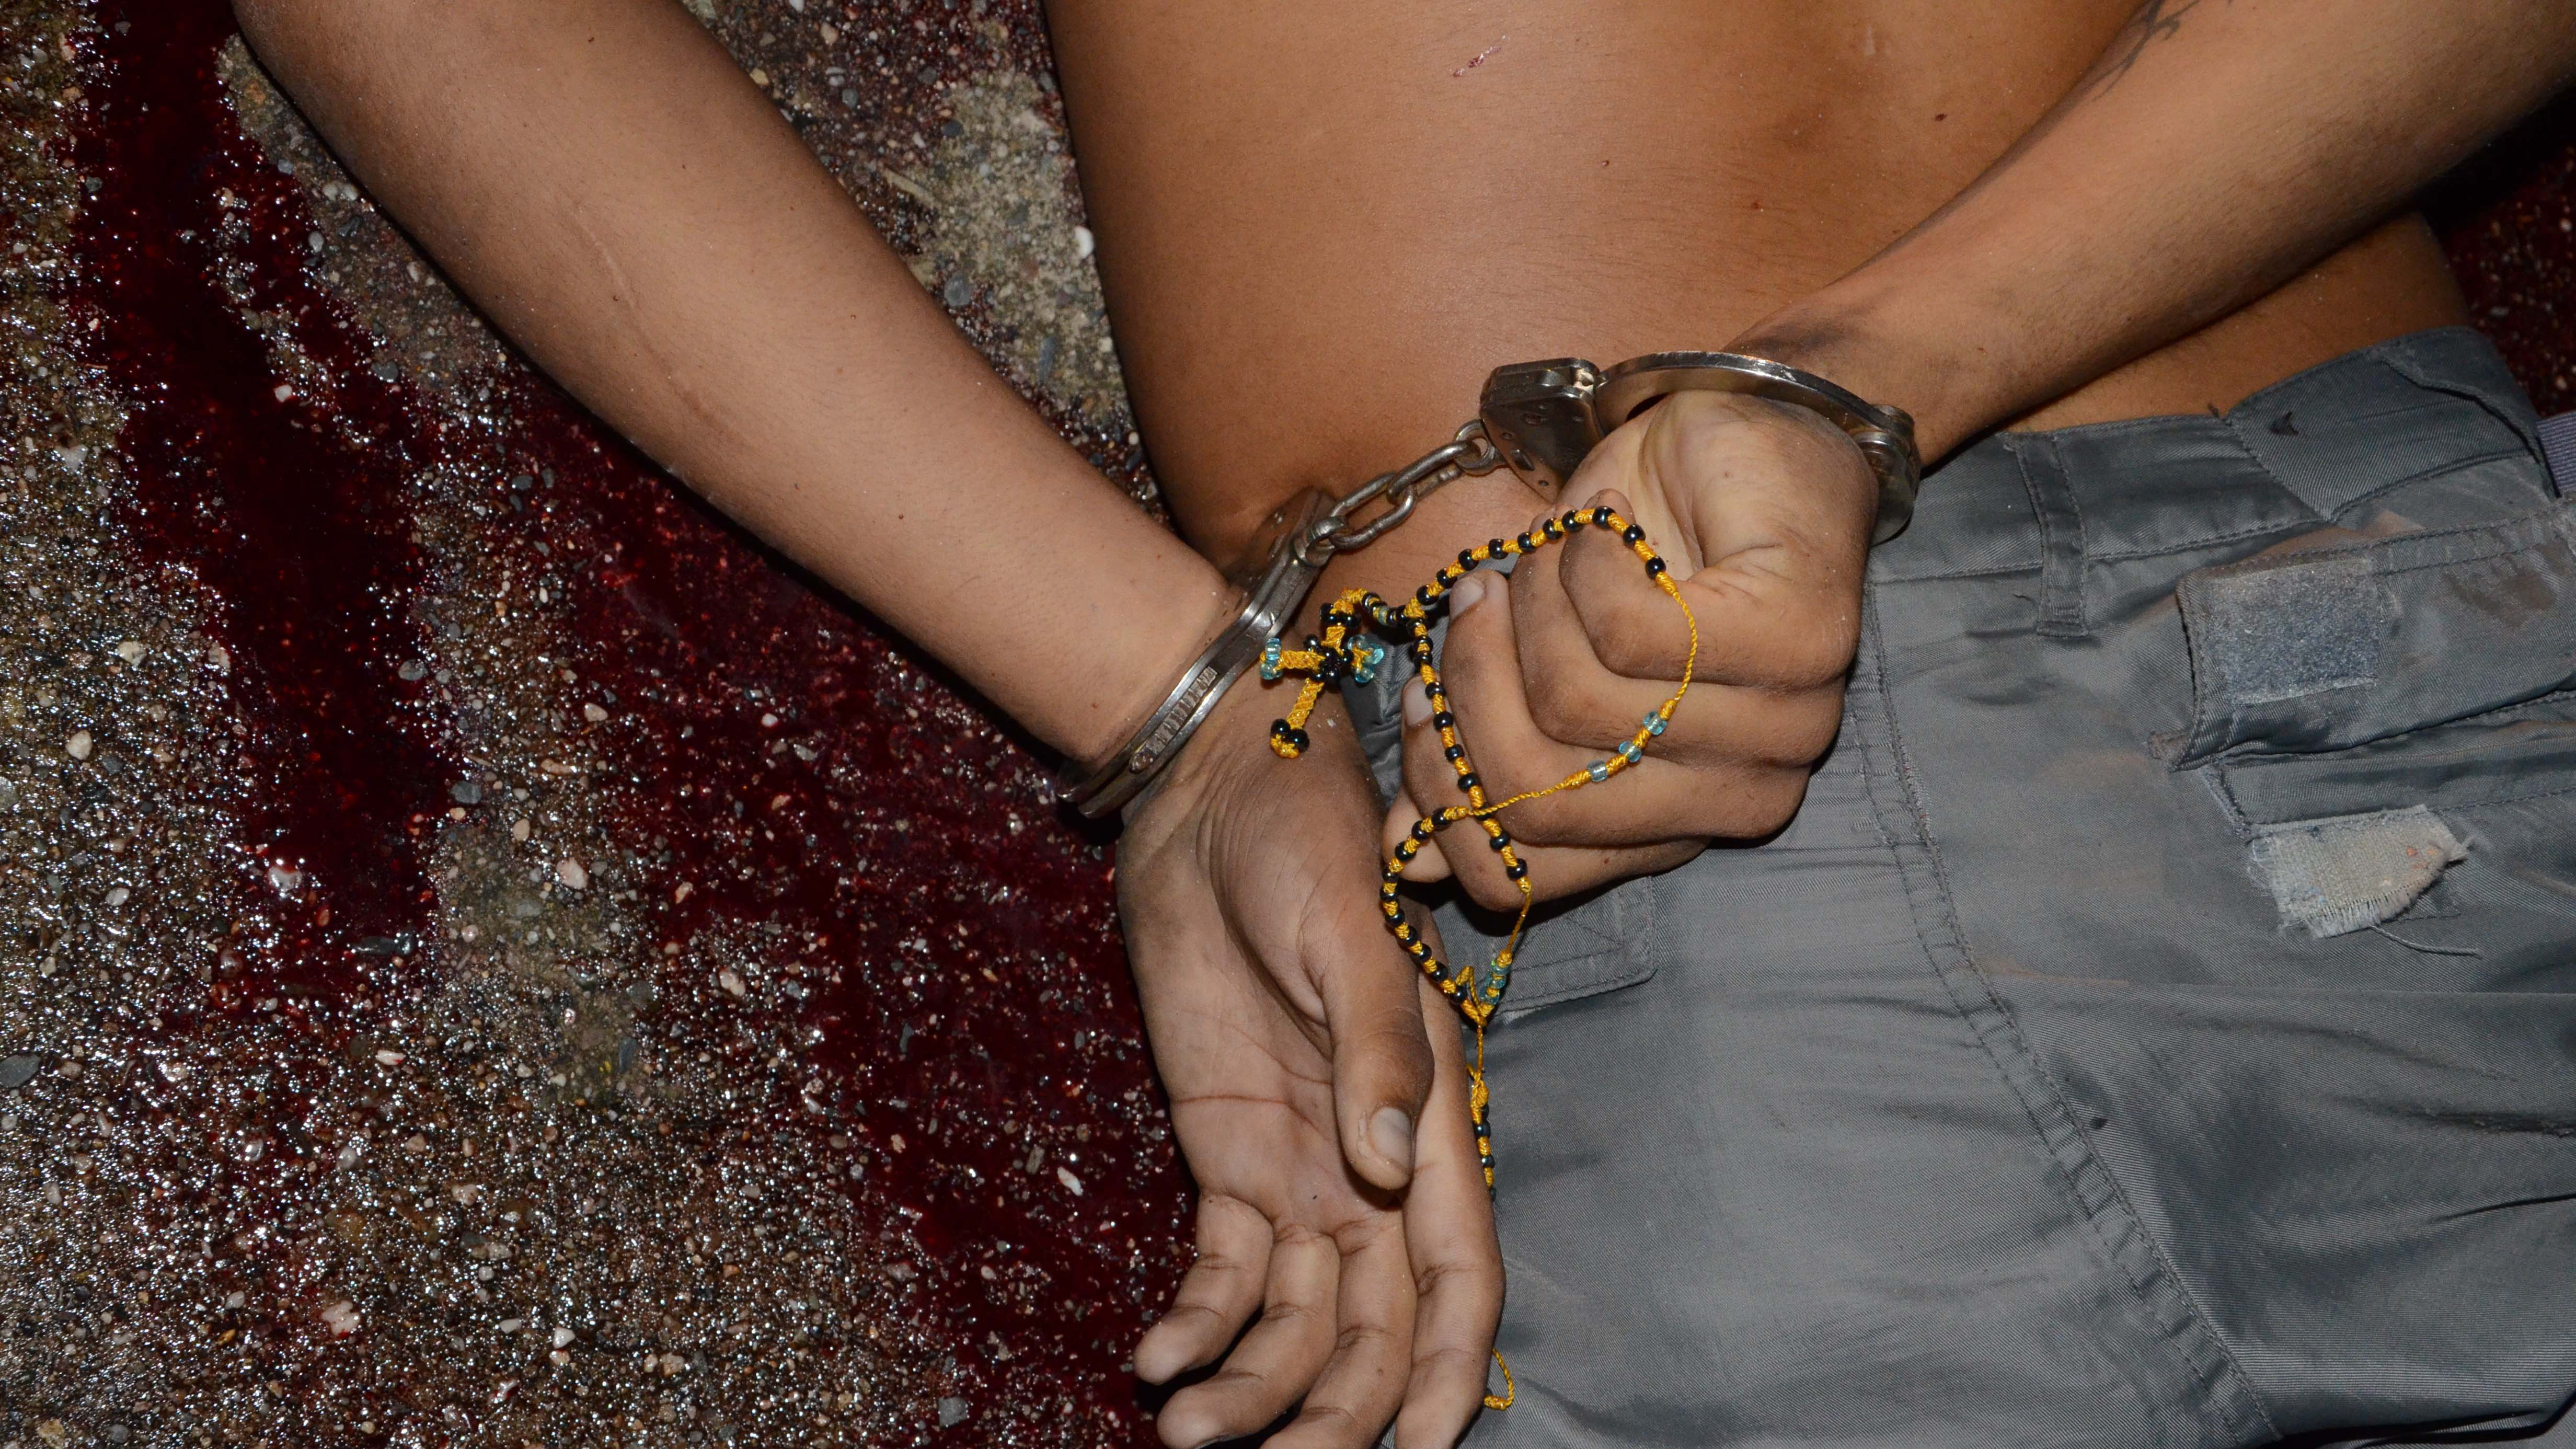 EDS NOTE GRAPHIC CONTENT - A man lies face down, handcuffed behind his back and holding a rosary after he was shot multiple times in Acapulco, Mexico, Wednesday, July 13, 2011. Violence in Acapulco has surged as rival drug gangs battle for control of the region. (AP Photo/Bernandino Hernandez)